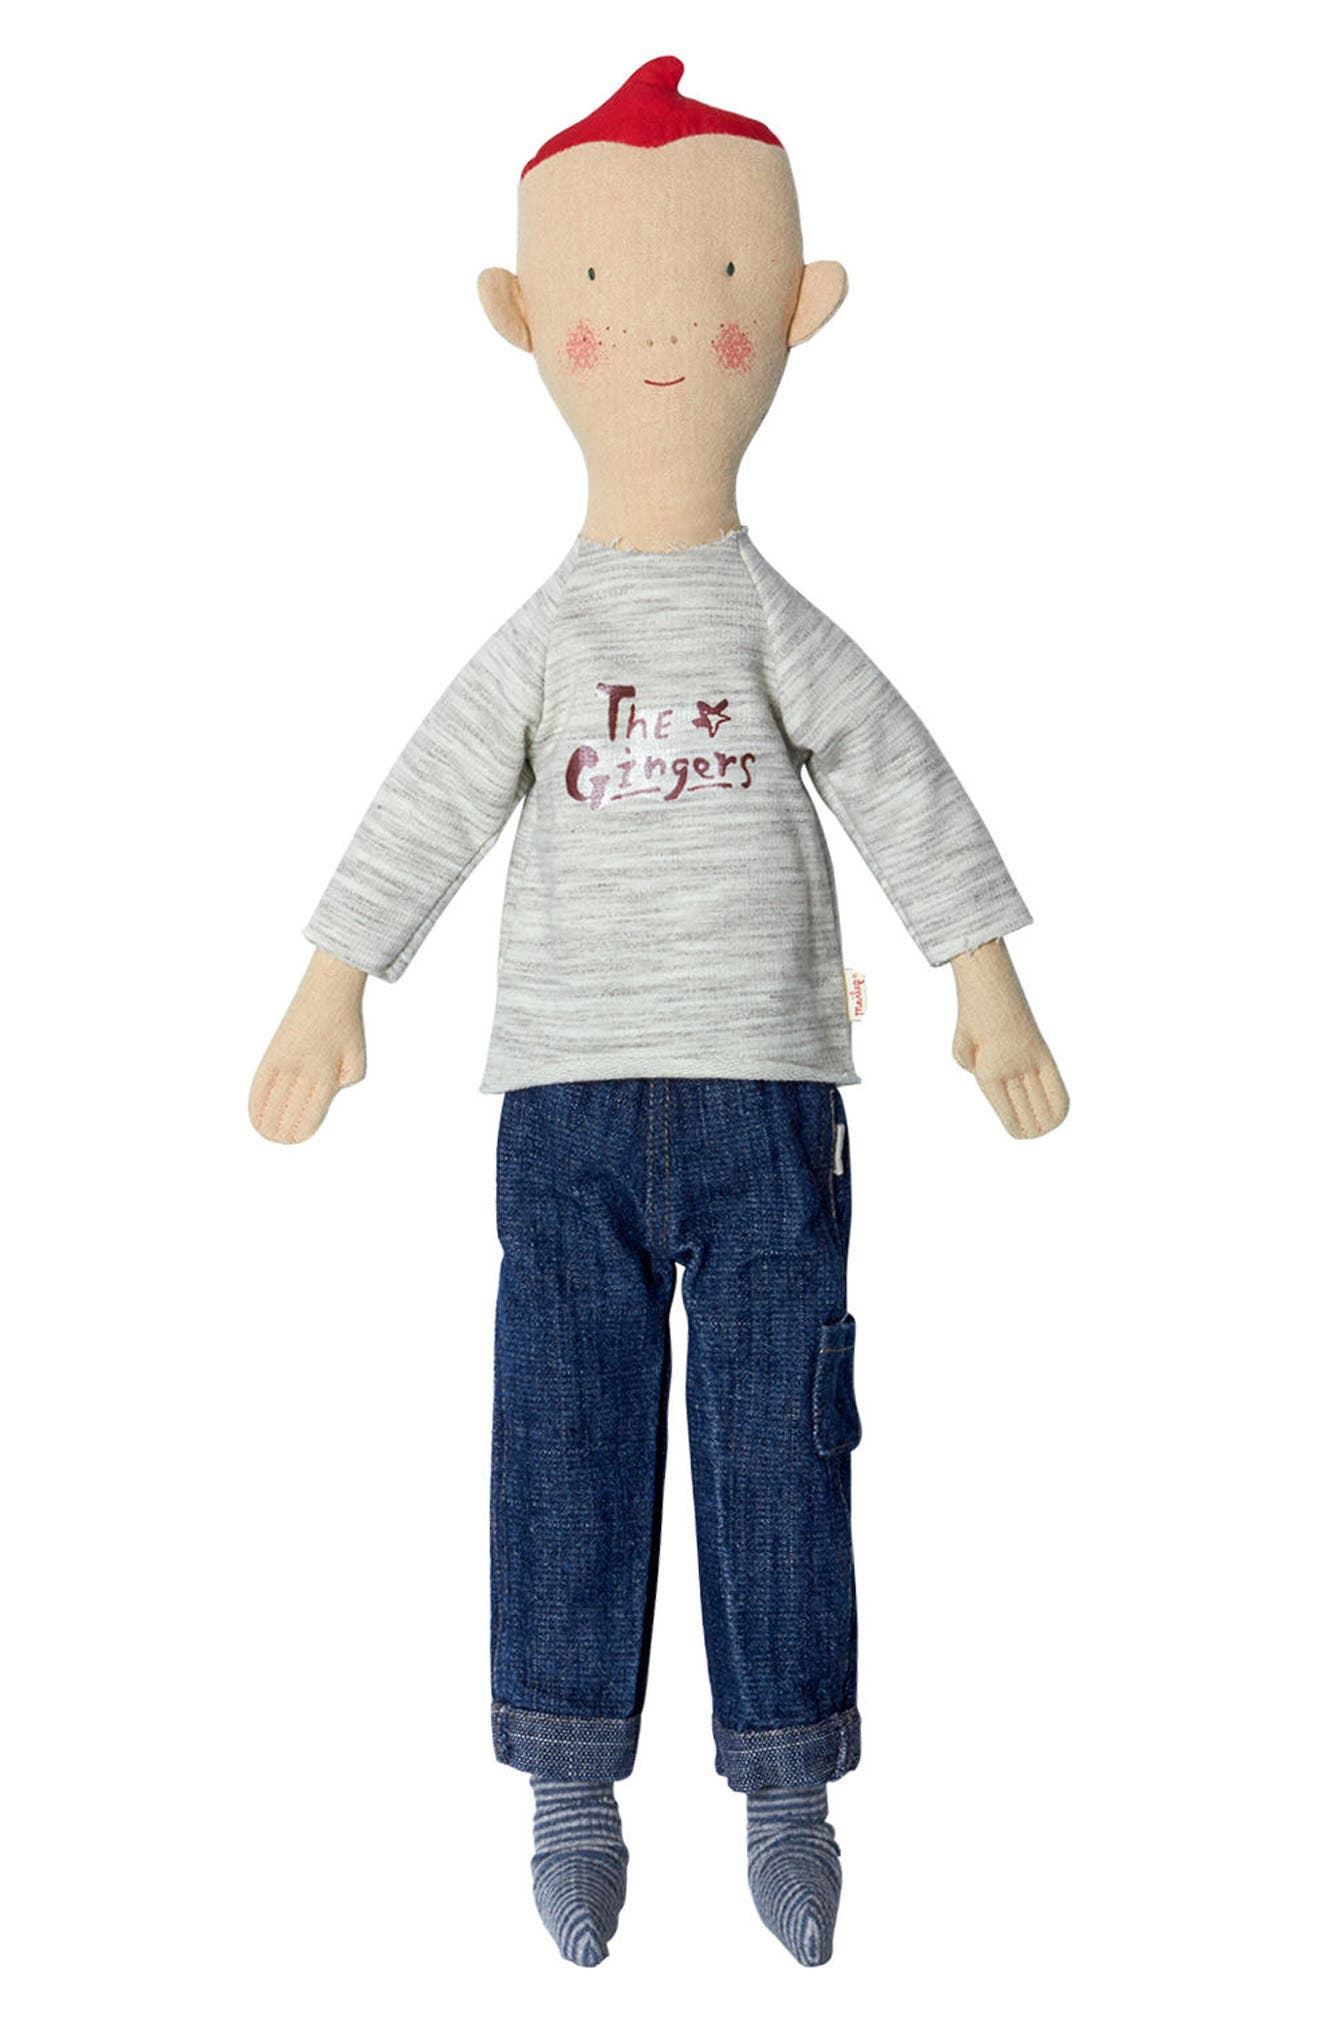 Main Image - Maileg Size 2 Ginger Brother Doll